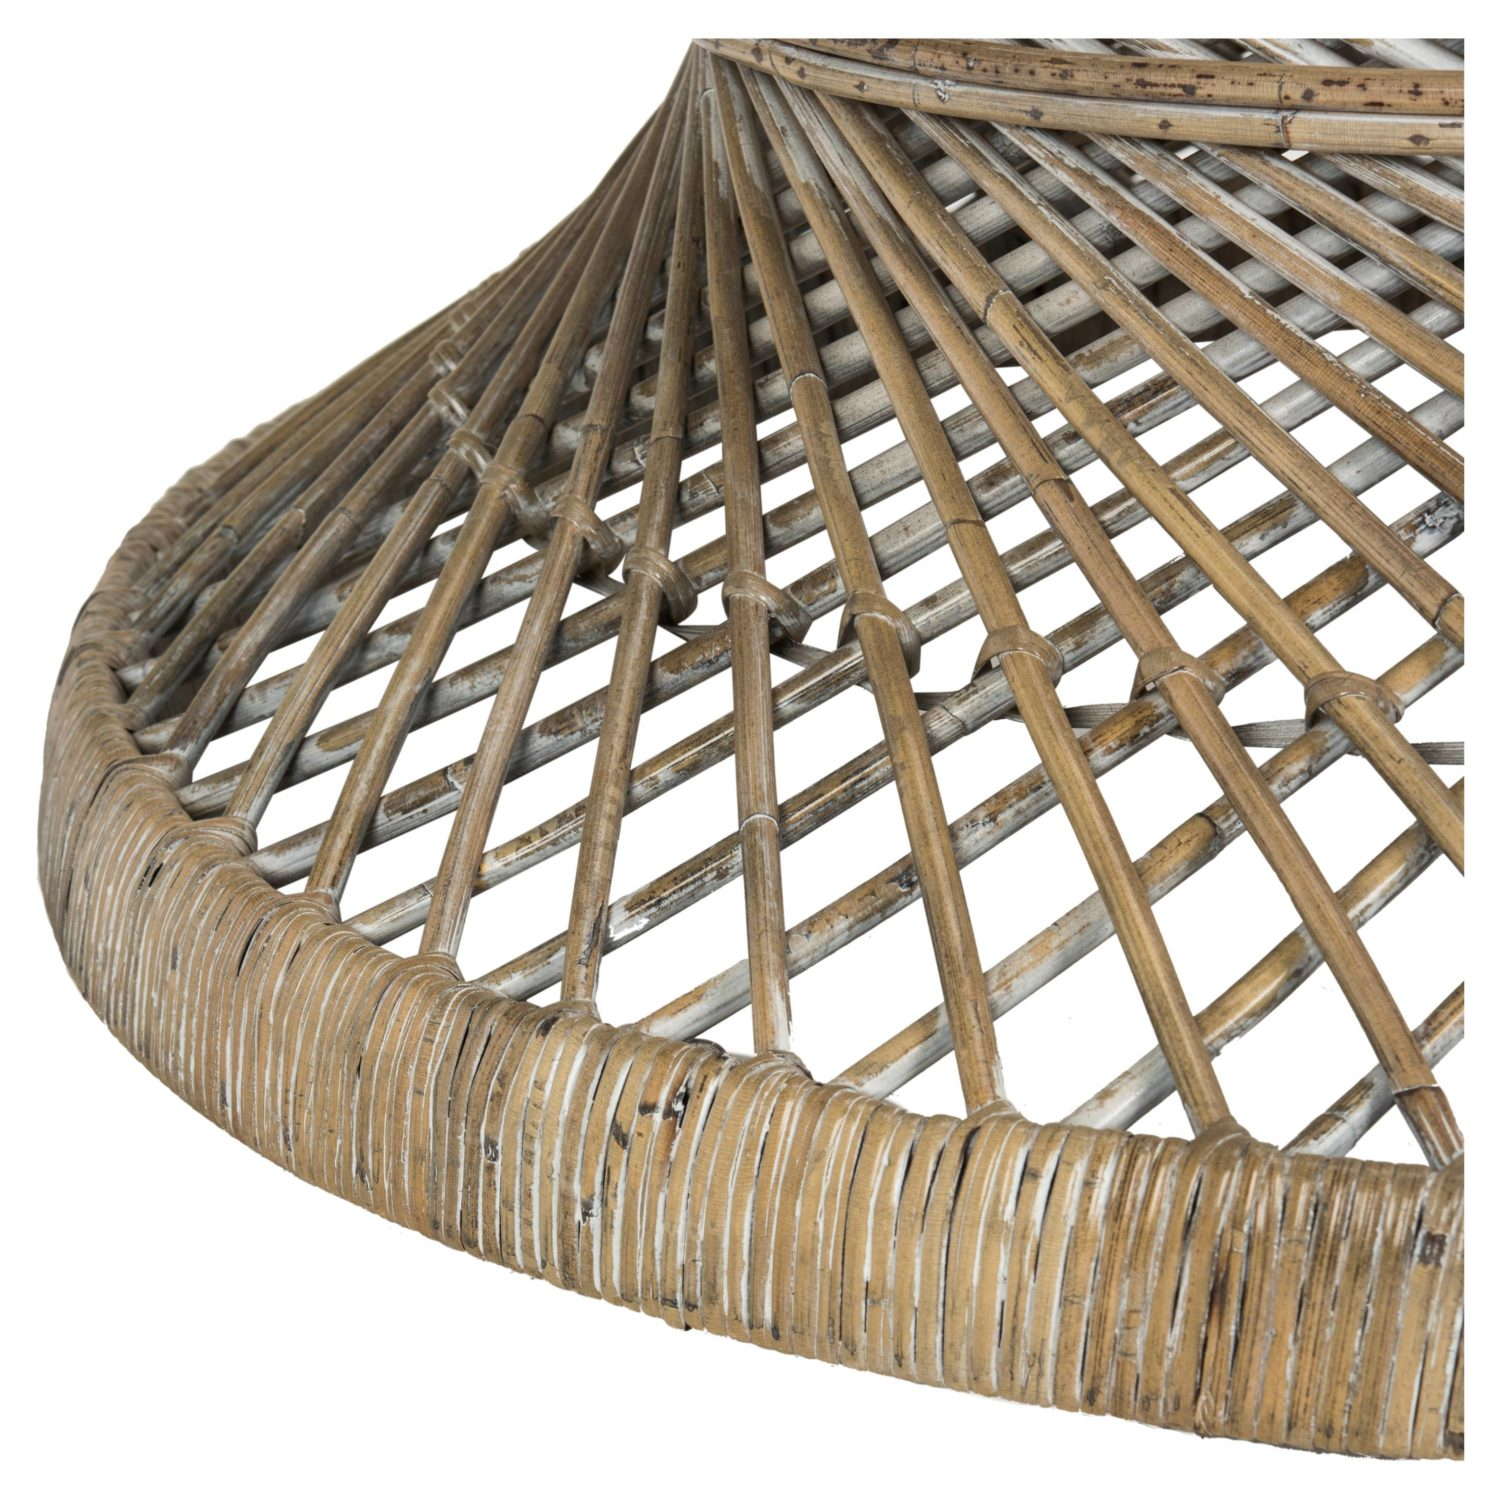 Rattan Coffee Table The Range: Eclectic Goods : Eclectic Goods